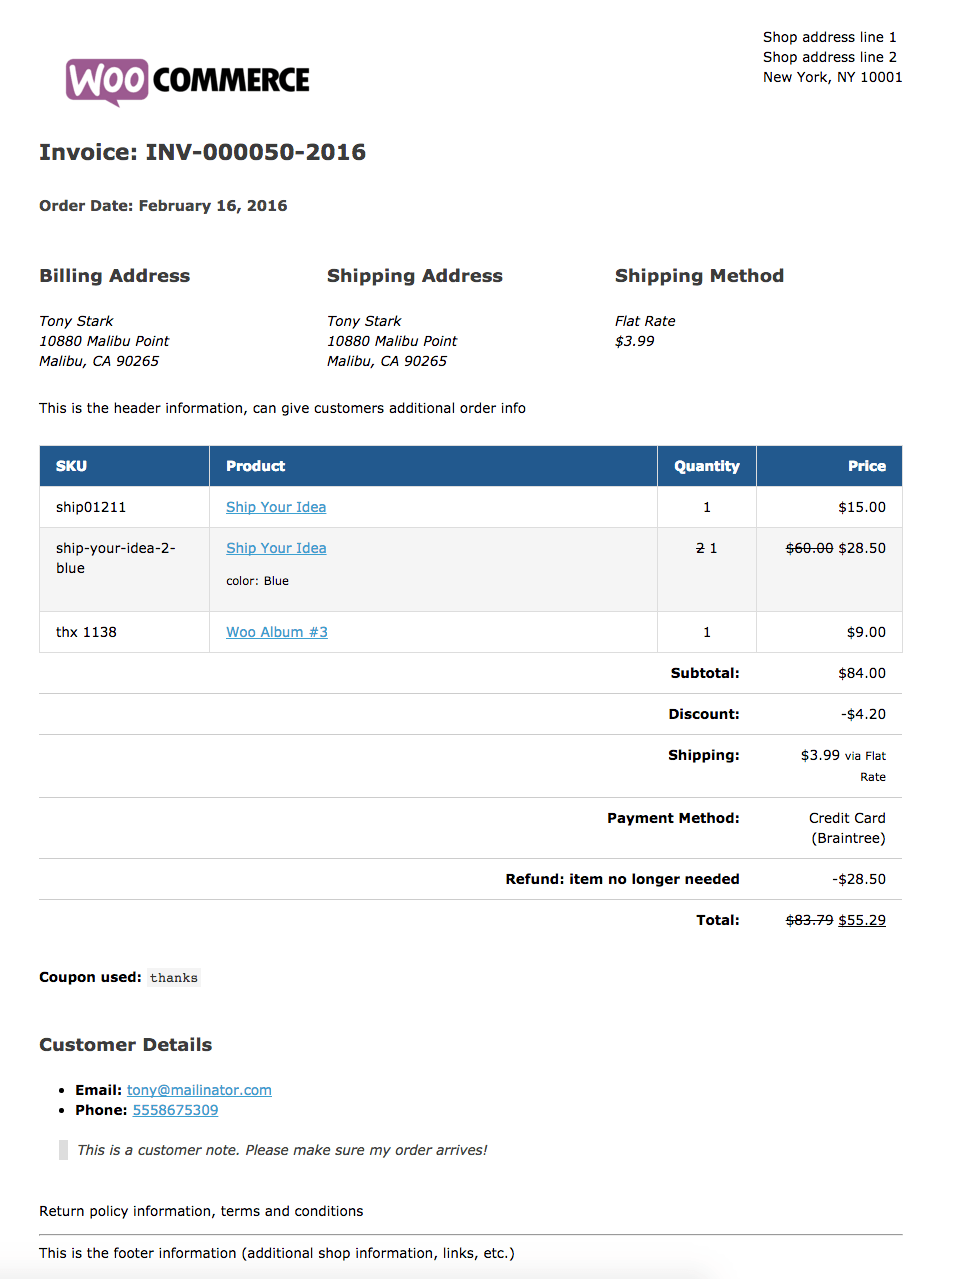 Aldiablosus  Winning Print Invoices Amp Packing Lists  Woocommerce With Heavenly View A Sample Invoice  With Divine Constructive Receipt Also What Does Receipt Mean In Addition Form I  Receipt Notice And Marriott Receipt As Well As Receipt Meaning Additionally American Depository Receipts From Woocommercecom With Aldiablosus  Heavenly Print Invoices Amp Packing Lists  Woocommerce With Divine View A Sample Invoice  And Winning Constructive Receipt Also What Does Receipt Mean In Addition Form I  Receipt Notice From Woocommercecom